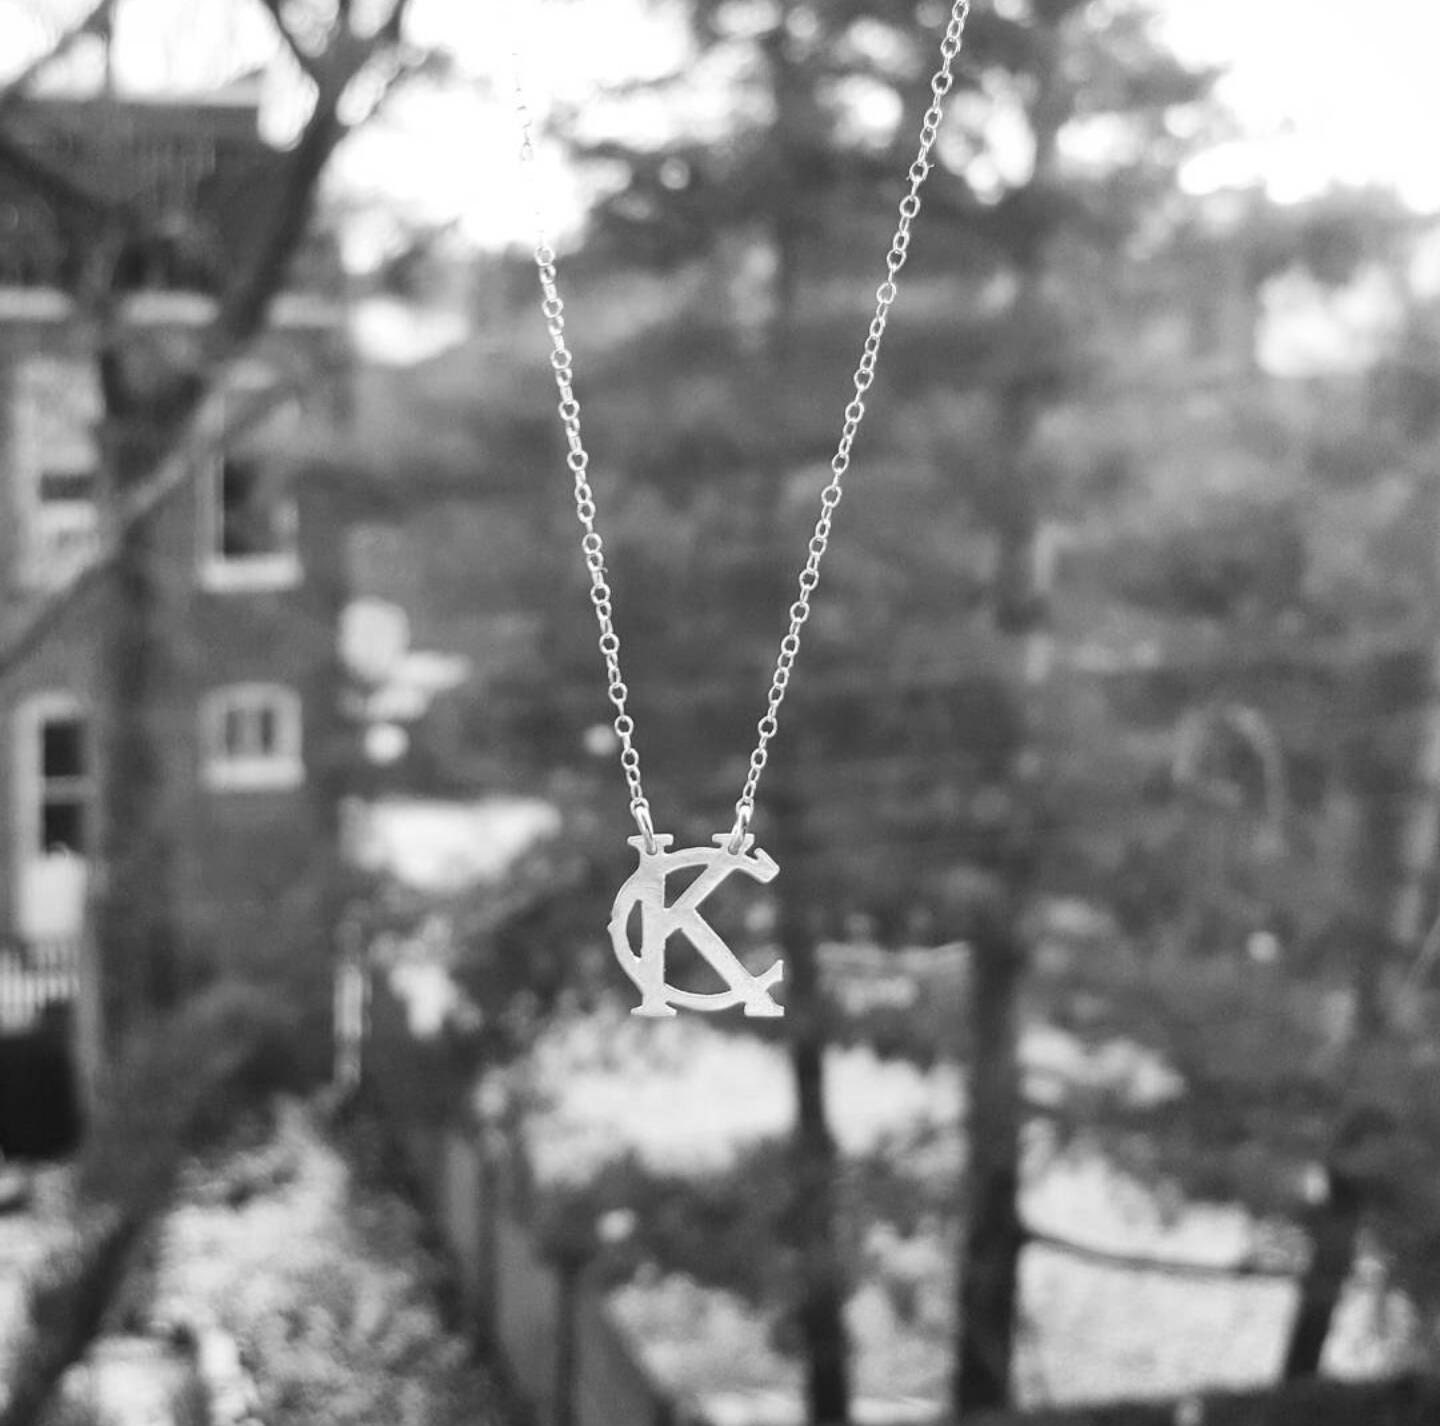 Kansas City necklace small KC pendant necklace